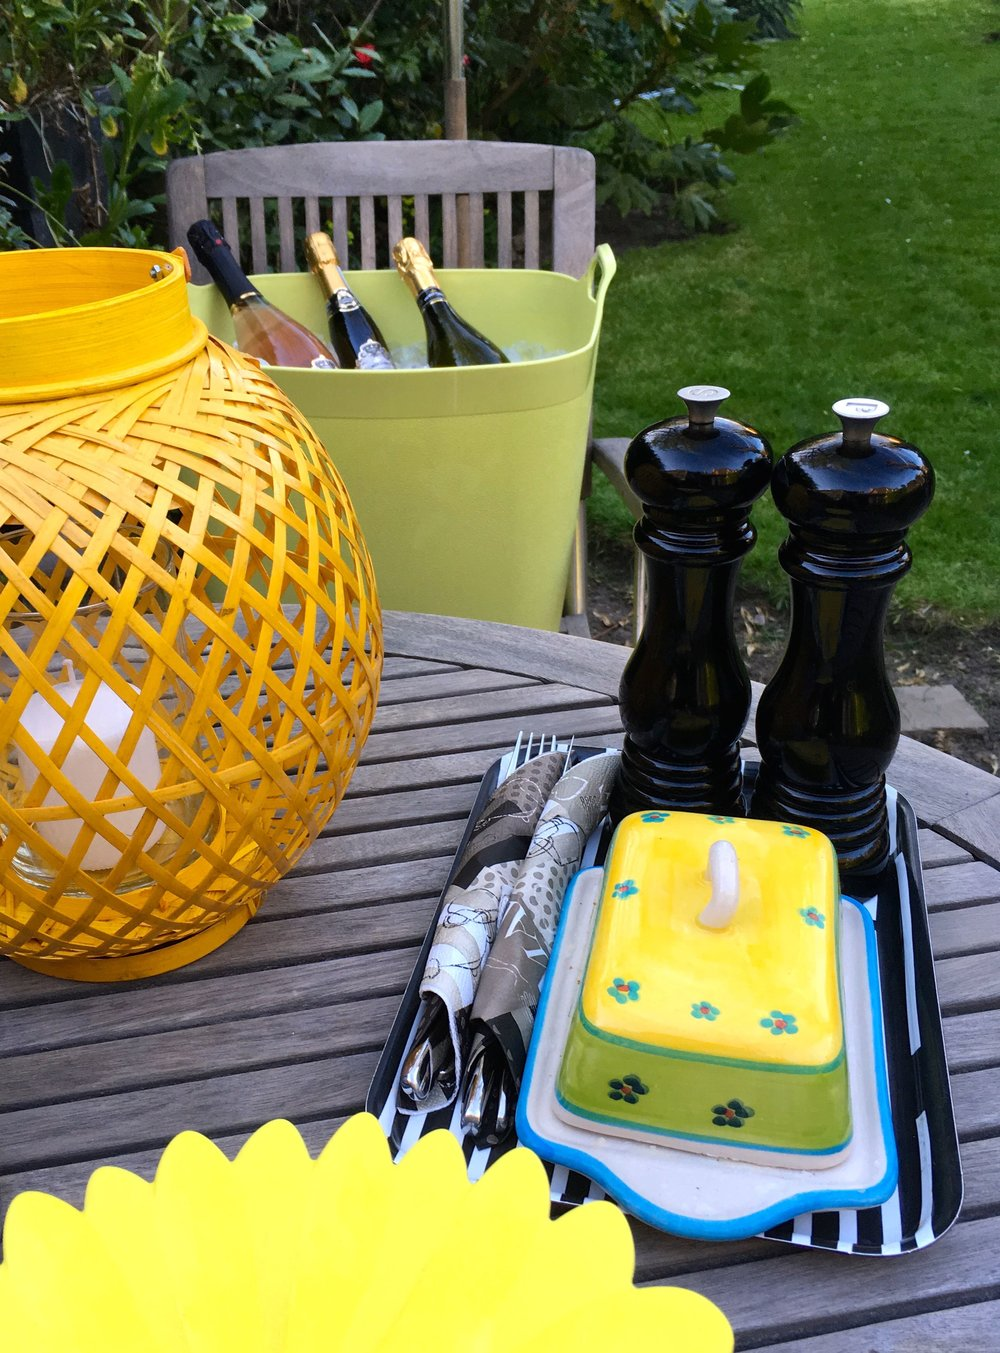 A barbecue with prosecco on ice is a great way to end the warmest day of the year (so far)